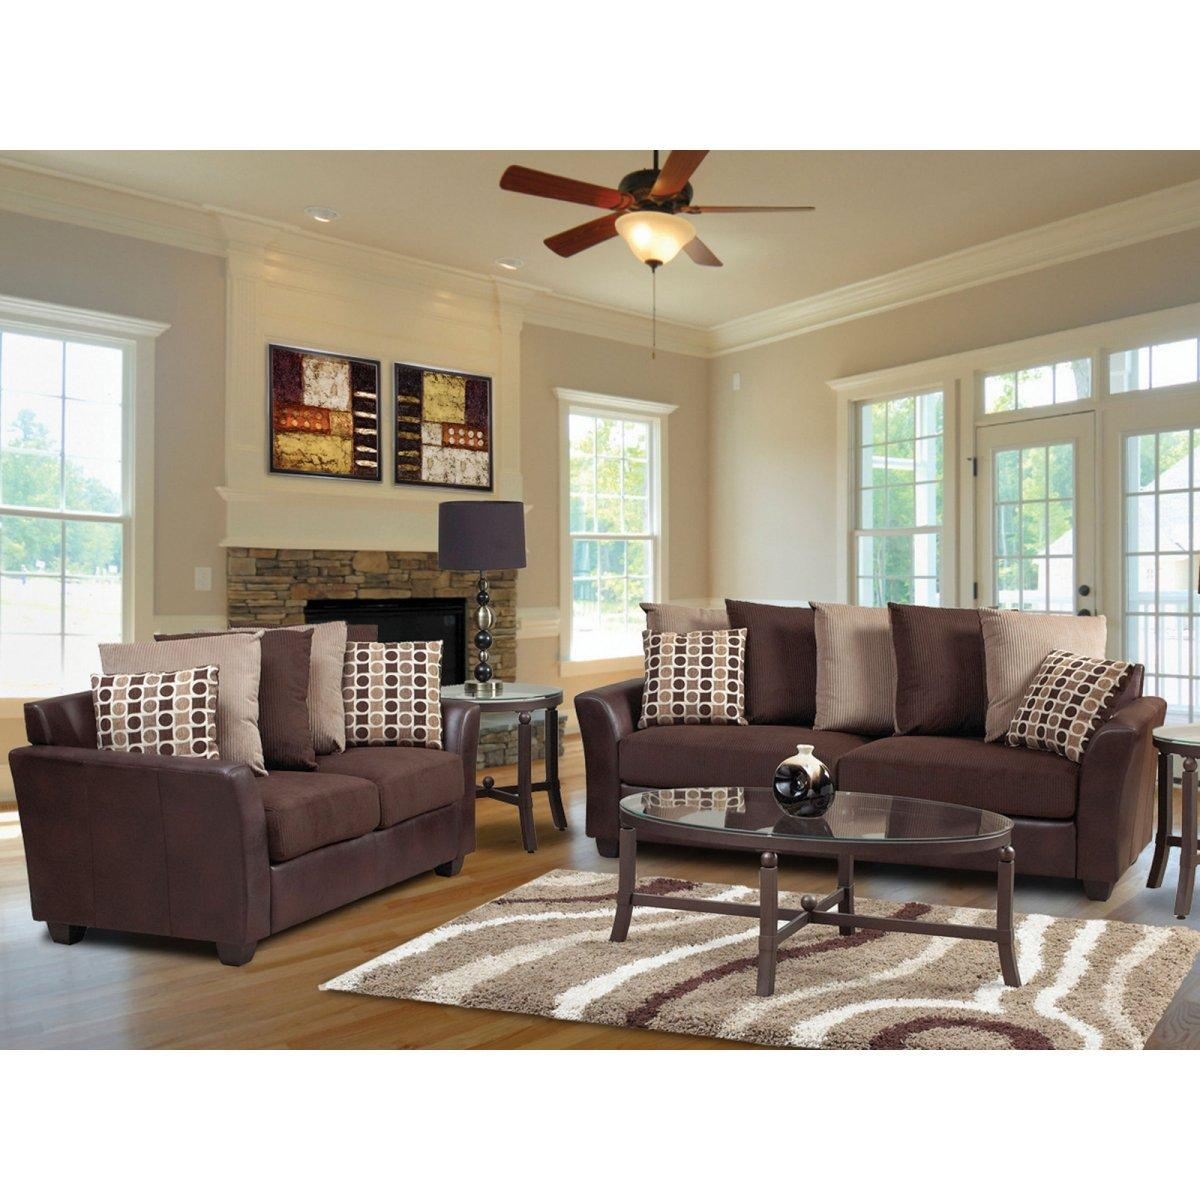 Living Room Decor Ideas Brown Sofa (Image 15 of 20)